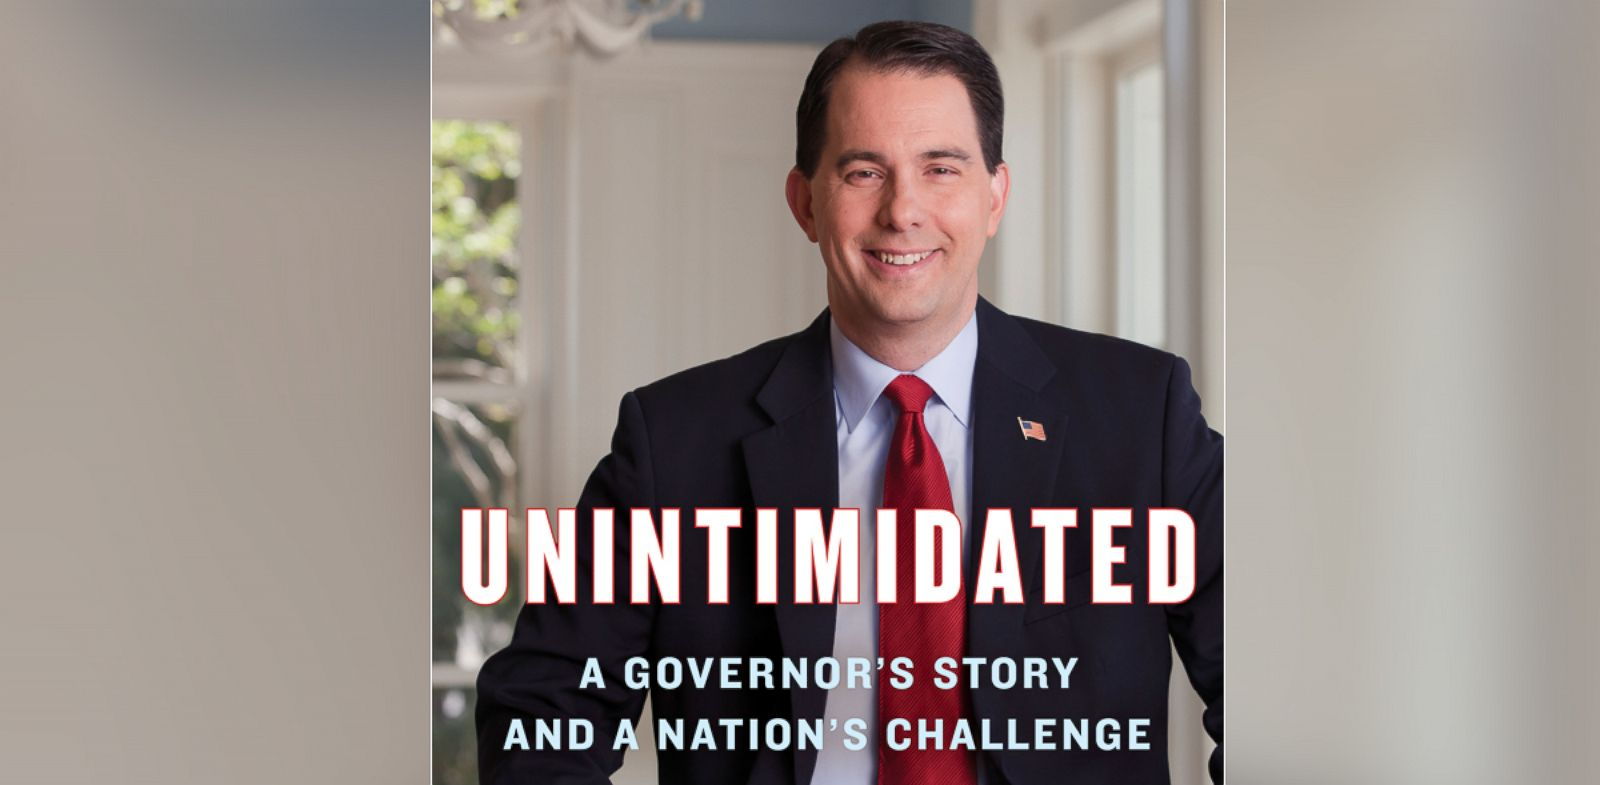 PHOTO: Wisconsin Governor Scott Walker's new book Unintimidated: A Governors Story and a Nations Challenge